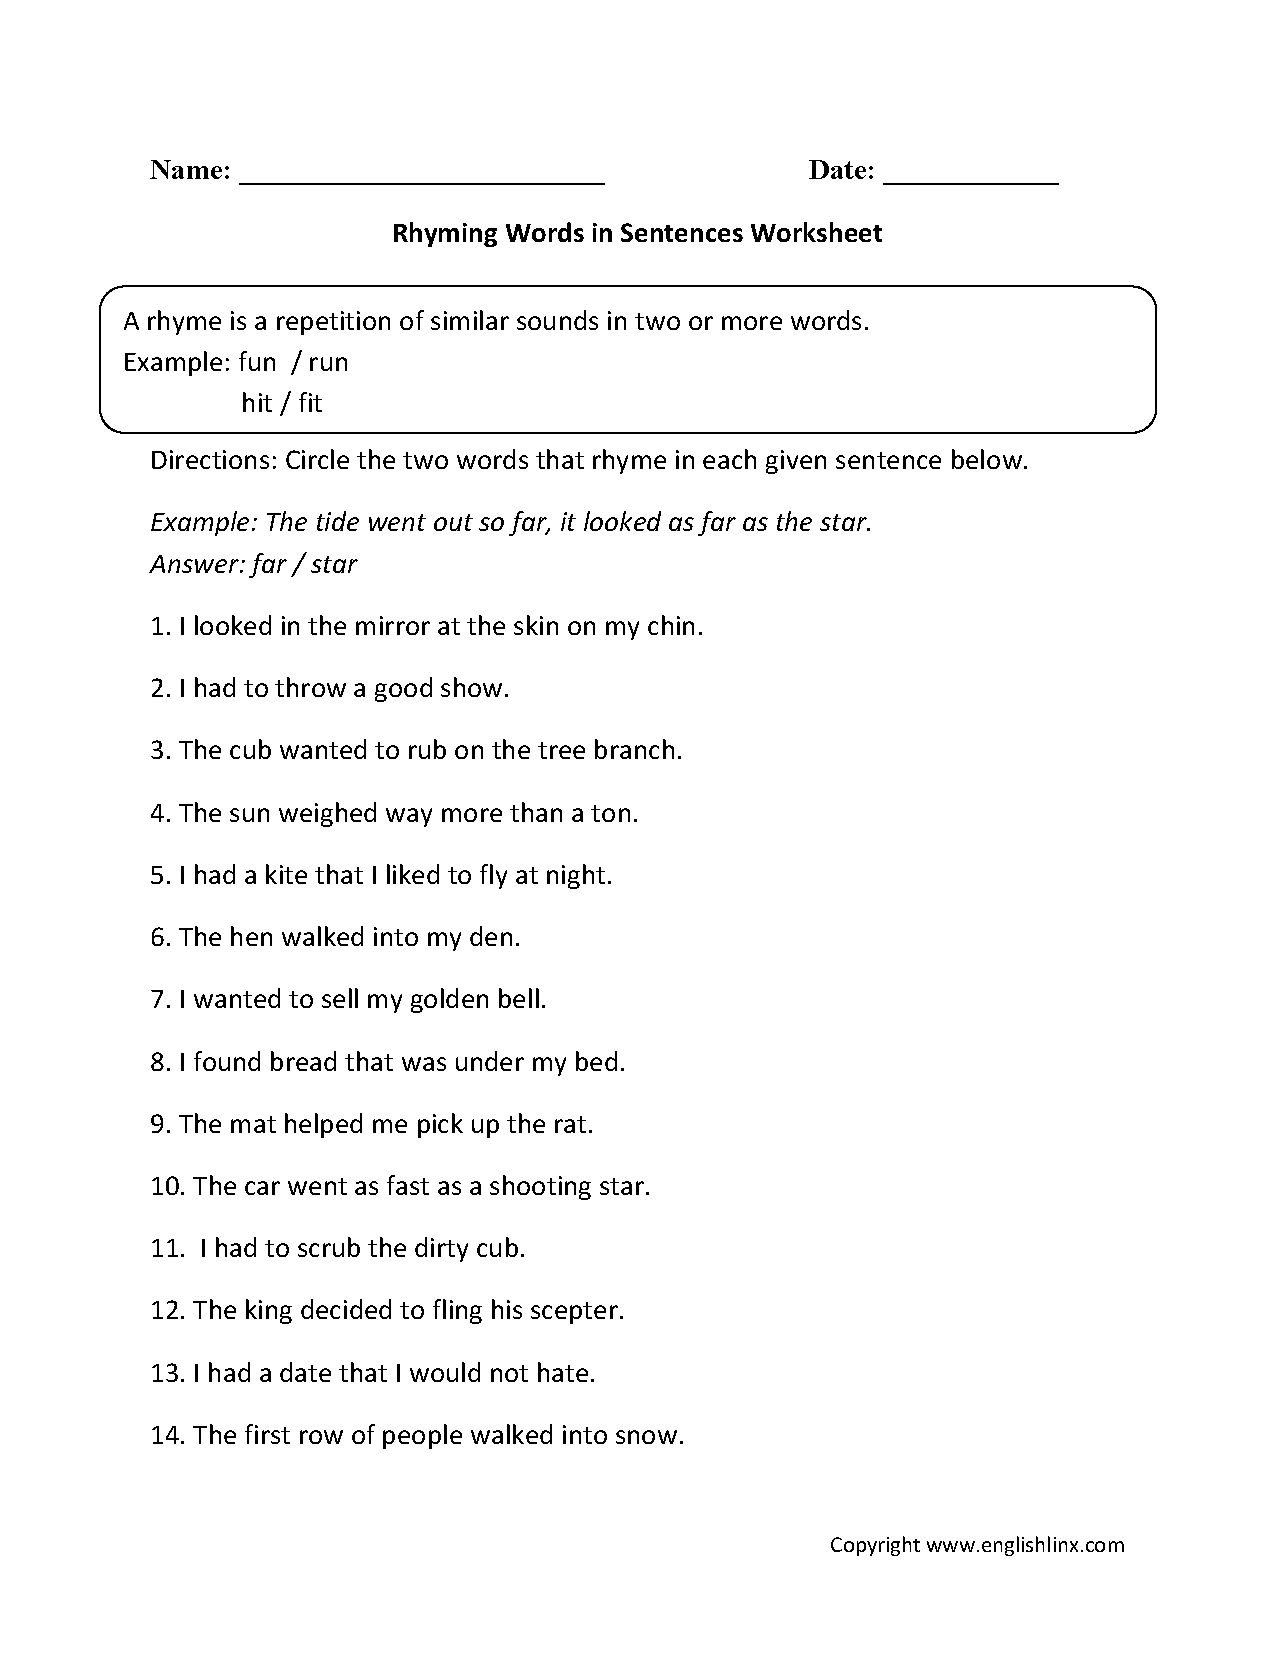 Worksheets Rhyming Words For Grade 1 Worksheets englishlinx com rhyming worksheets words in sentences worksheet